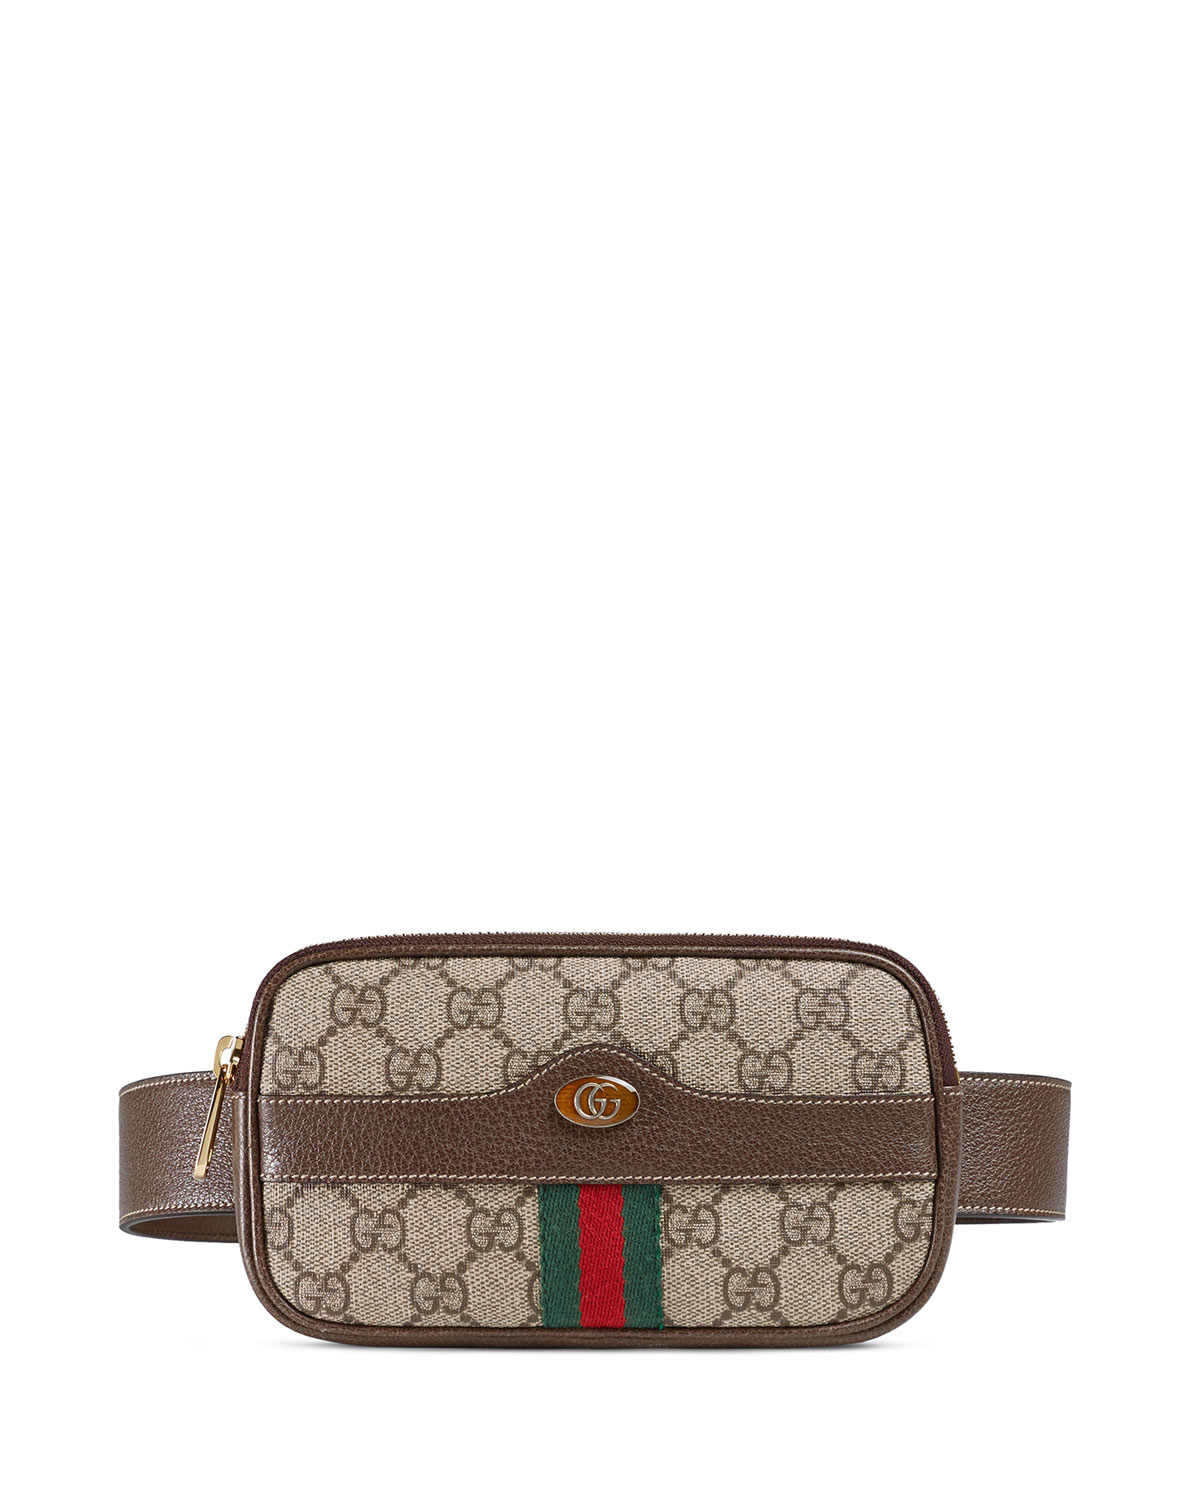 df658c74e55 Gucci Ophidia GG Supreme Canvas Belt Bag